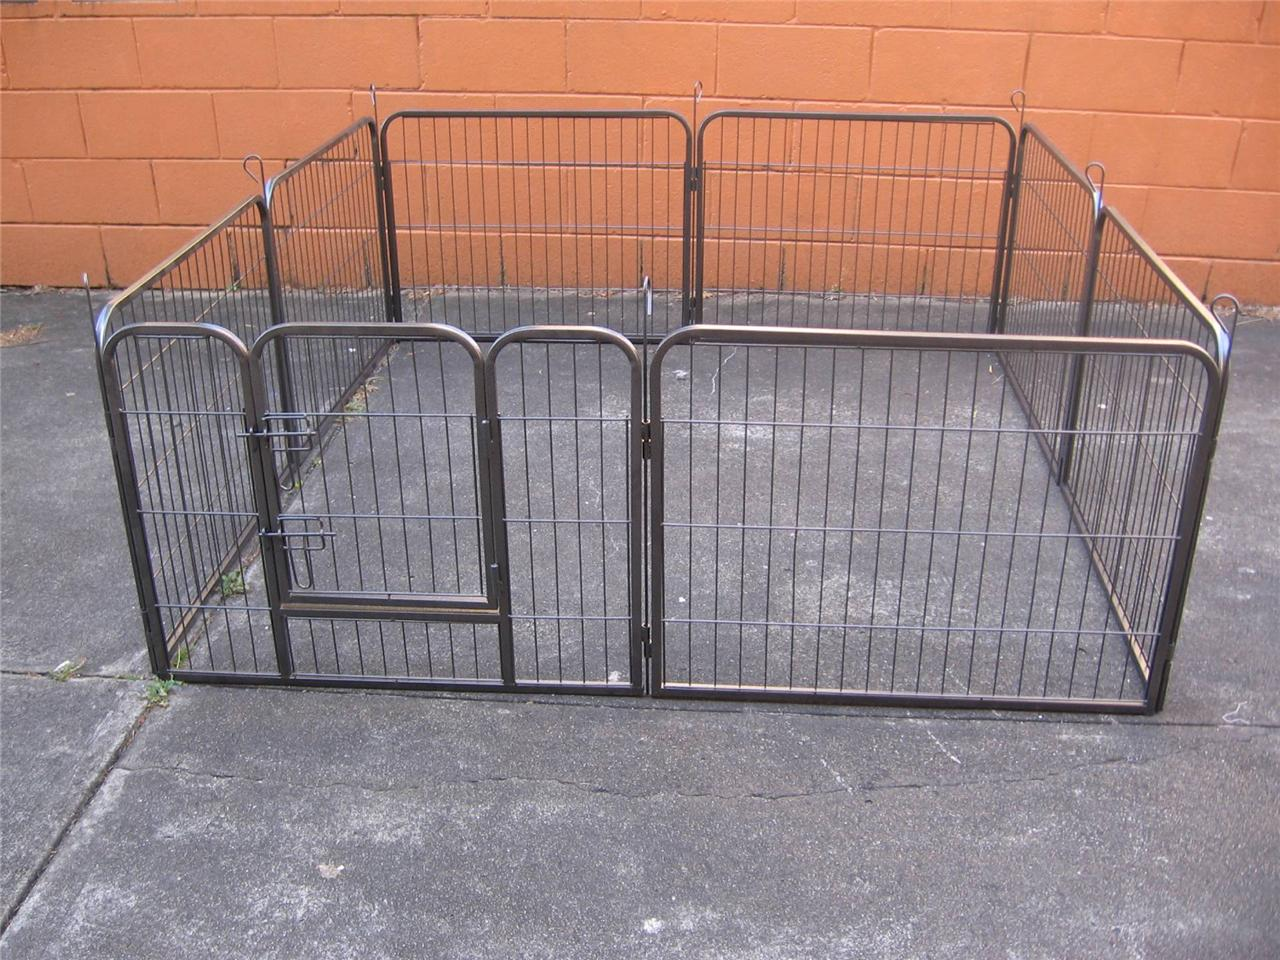 Dog Fence Enclosure Brand New Pet Dog Exercise Enclosure Fence Play Pen Run